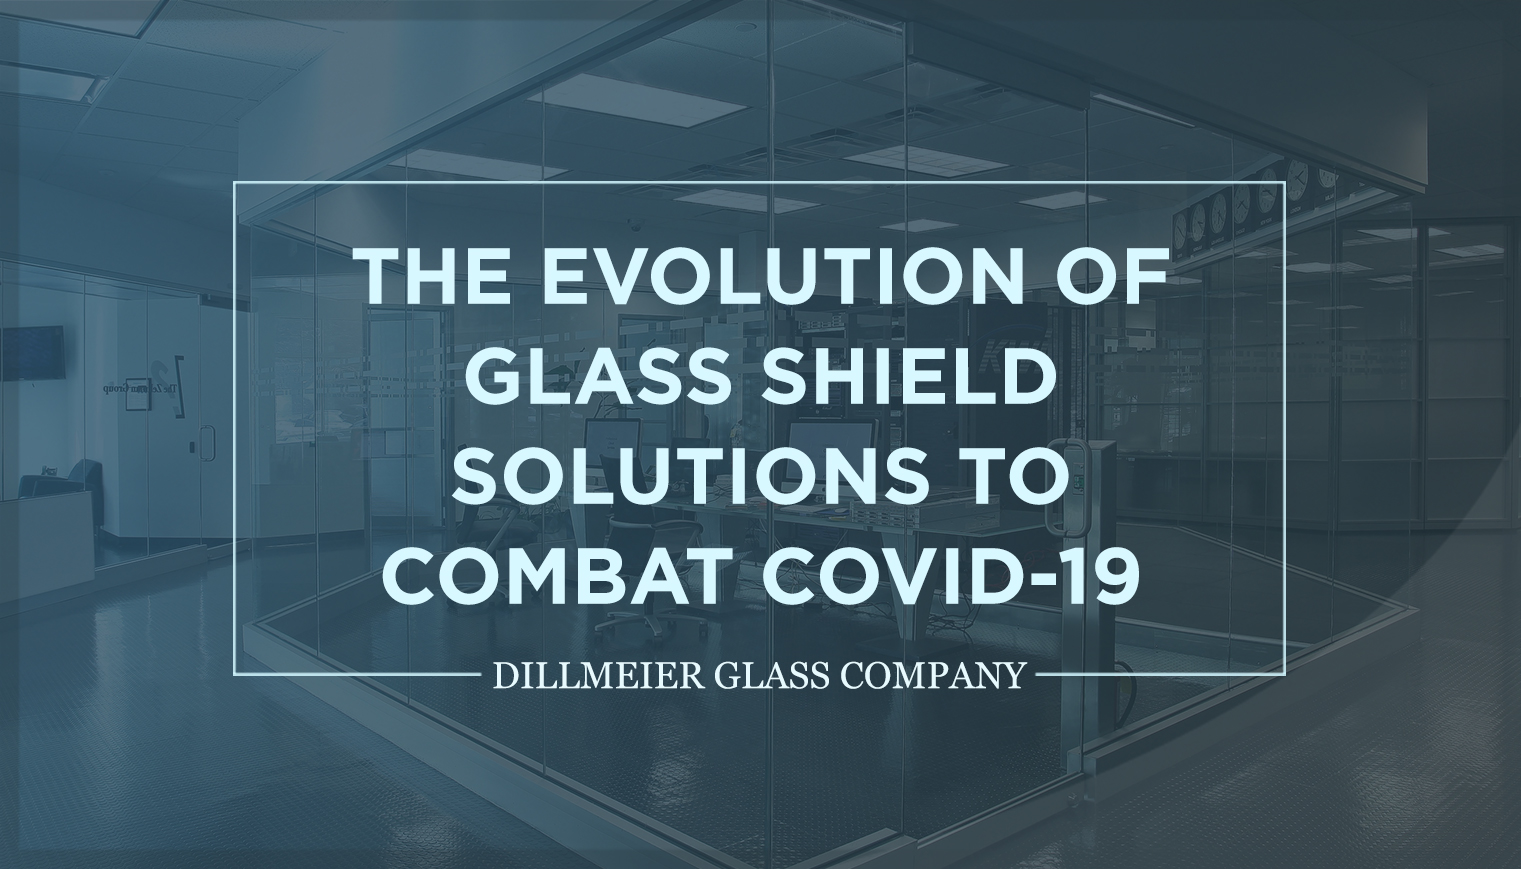 The Evolution of Glass Shield Solutions to Combat COVID-19